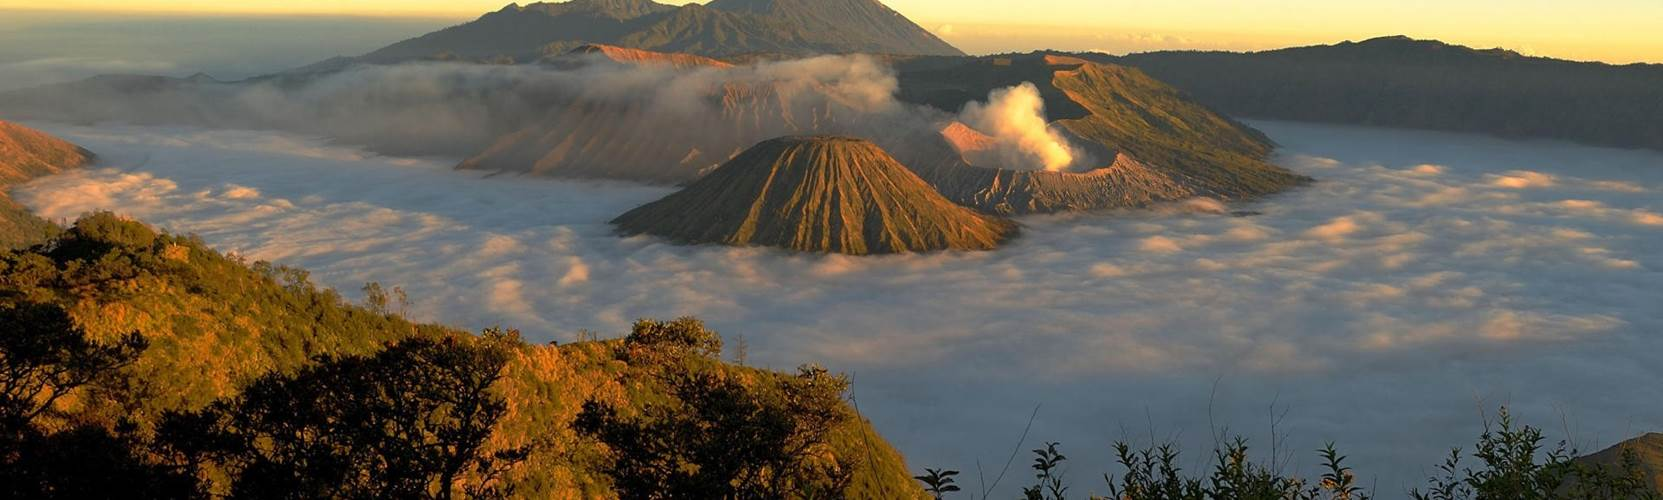 Indonesia treks Mount Bromo